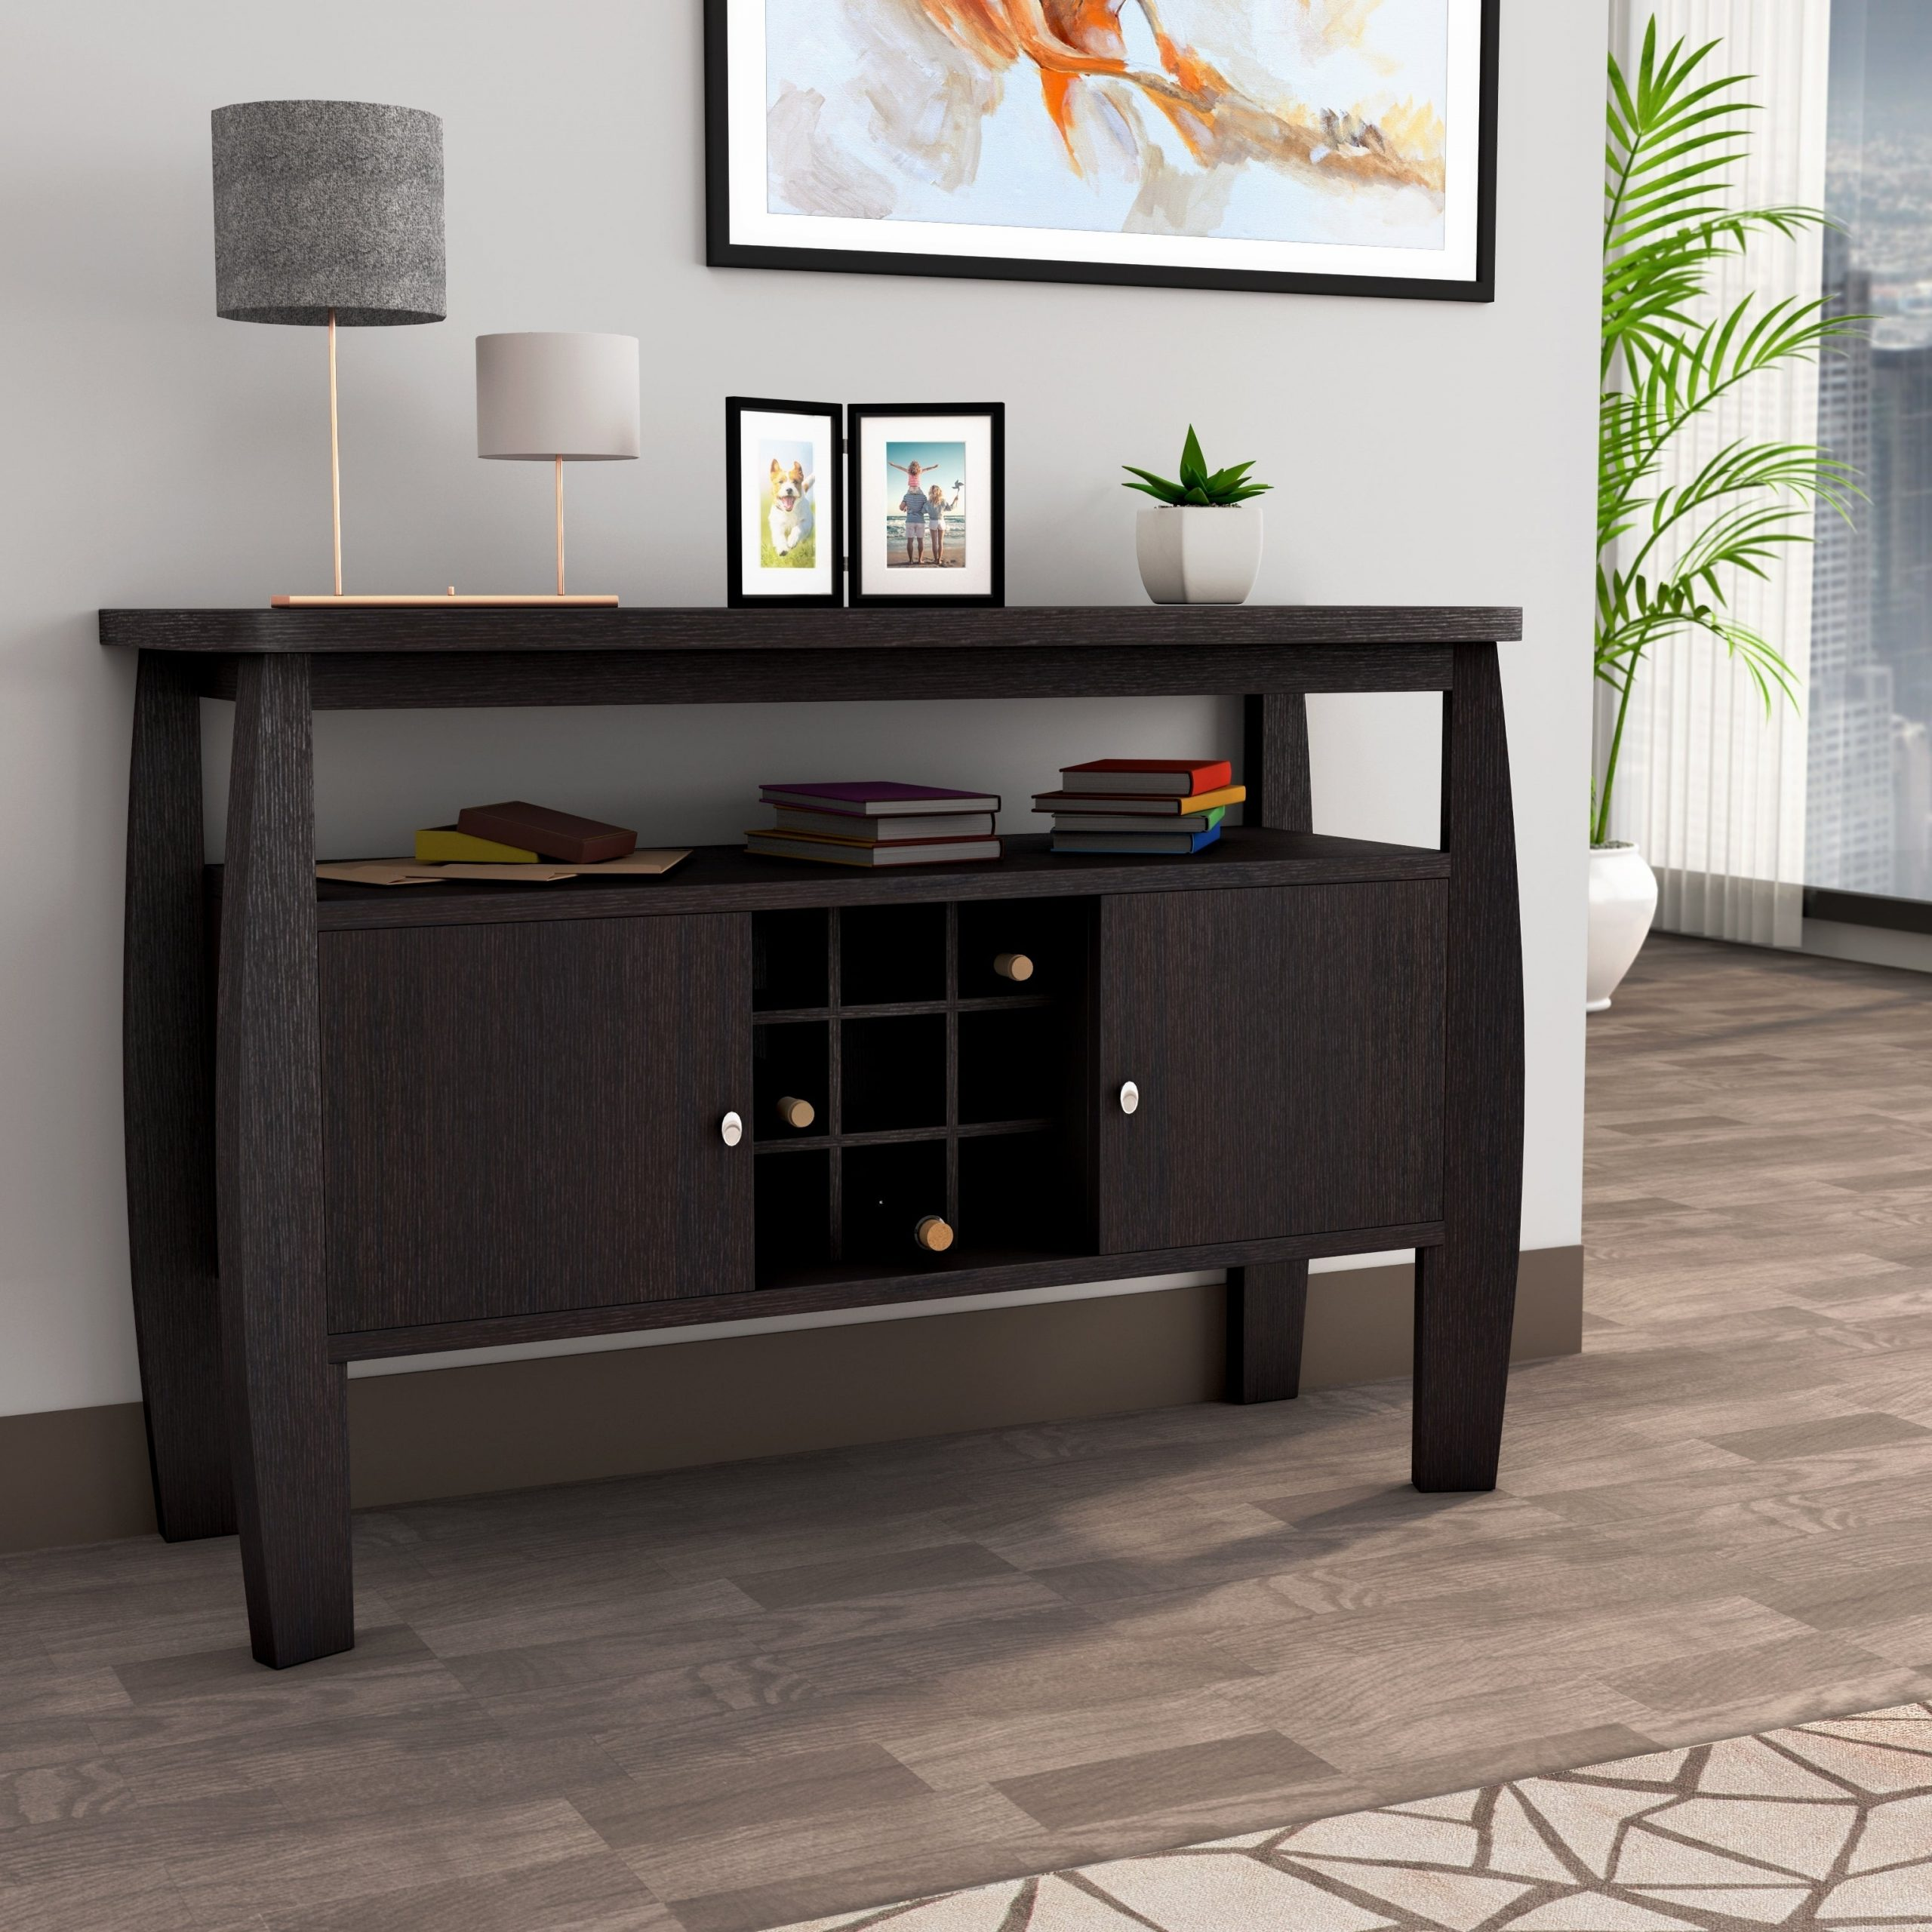 """Featured Photo of Electra 46"""" Wide 4 Drawer Acacia Wood Buffet Tables"""